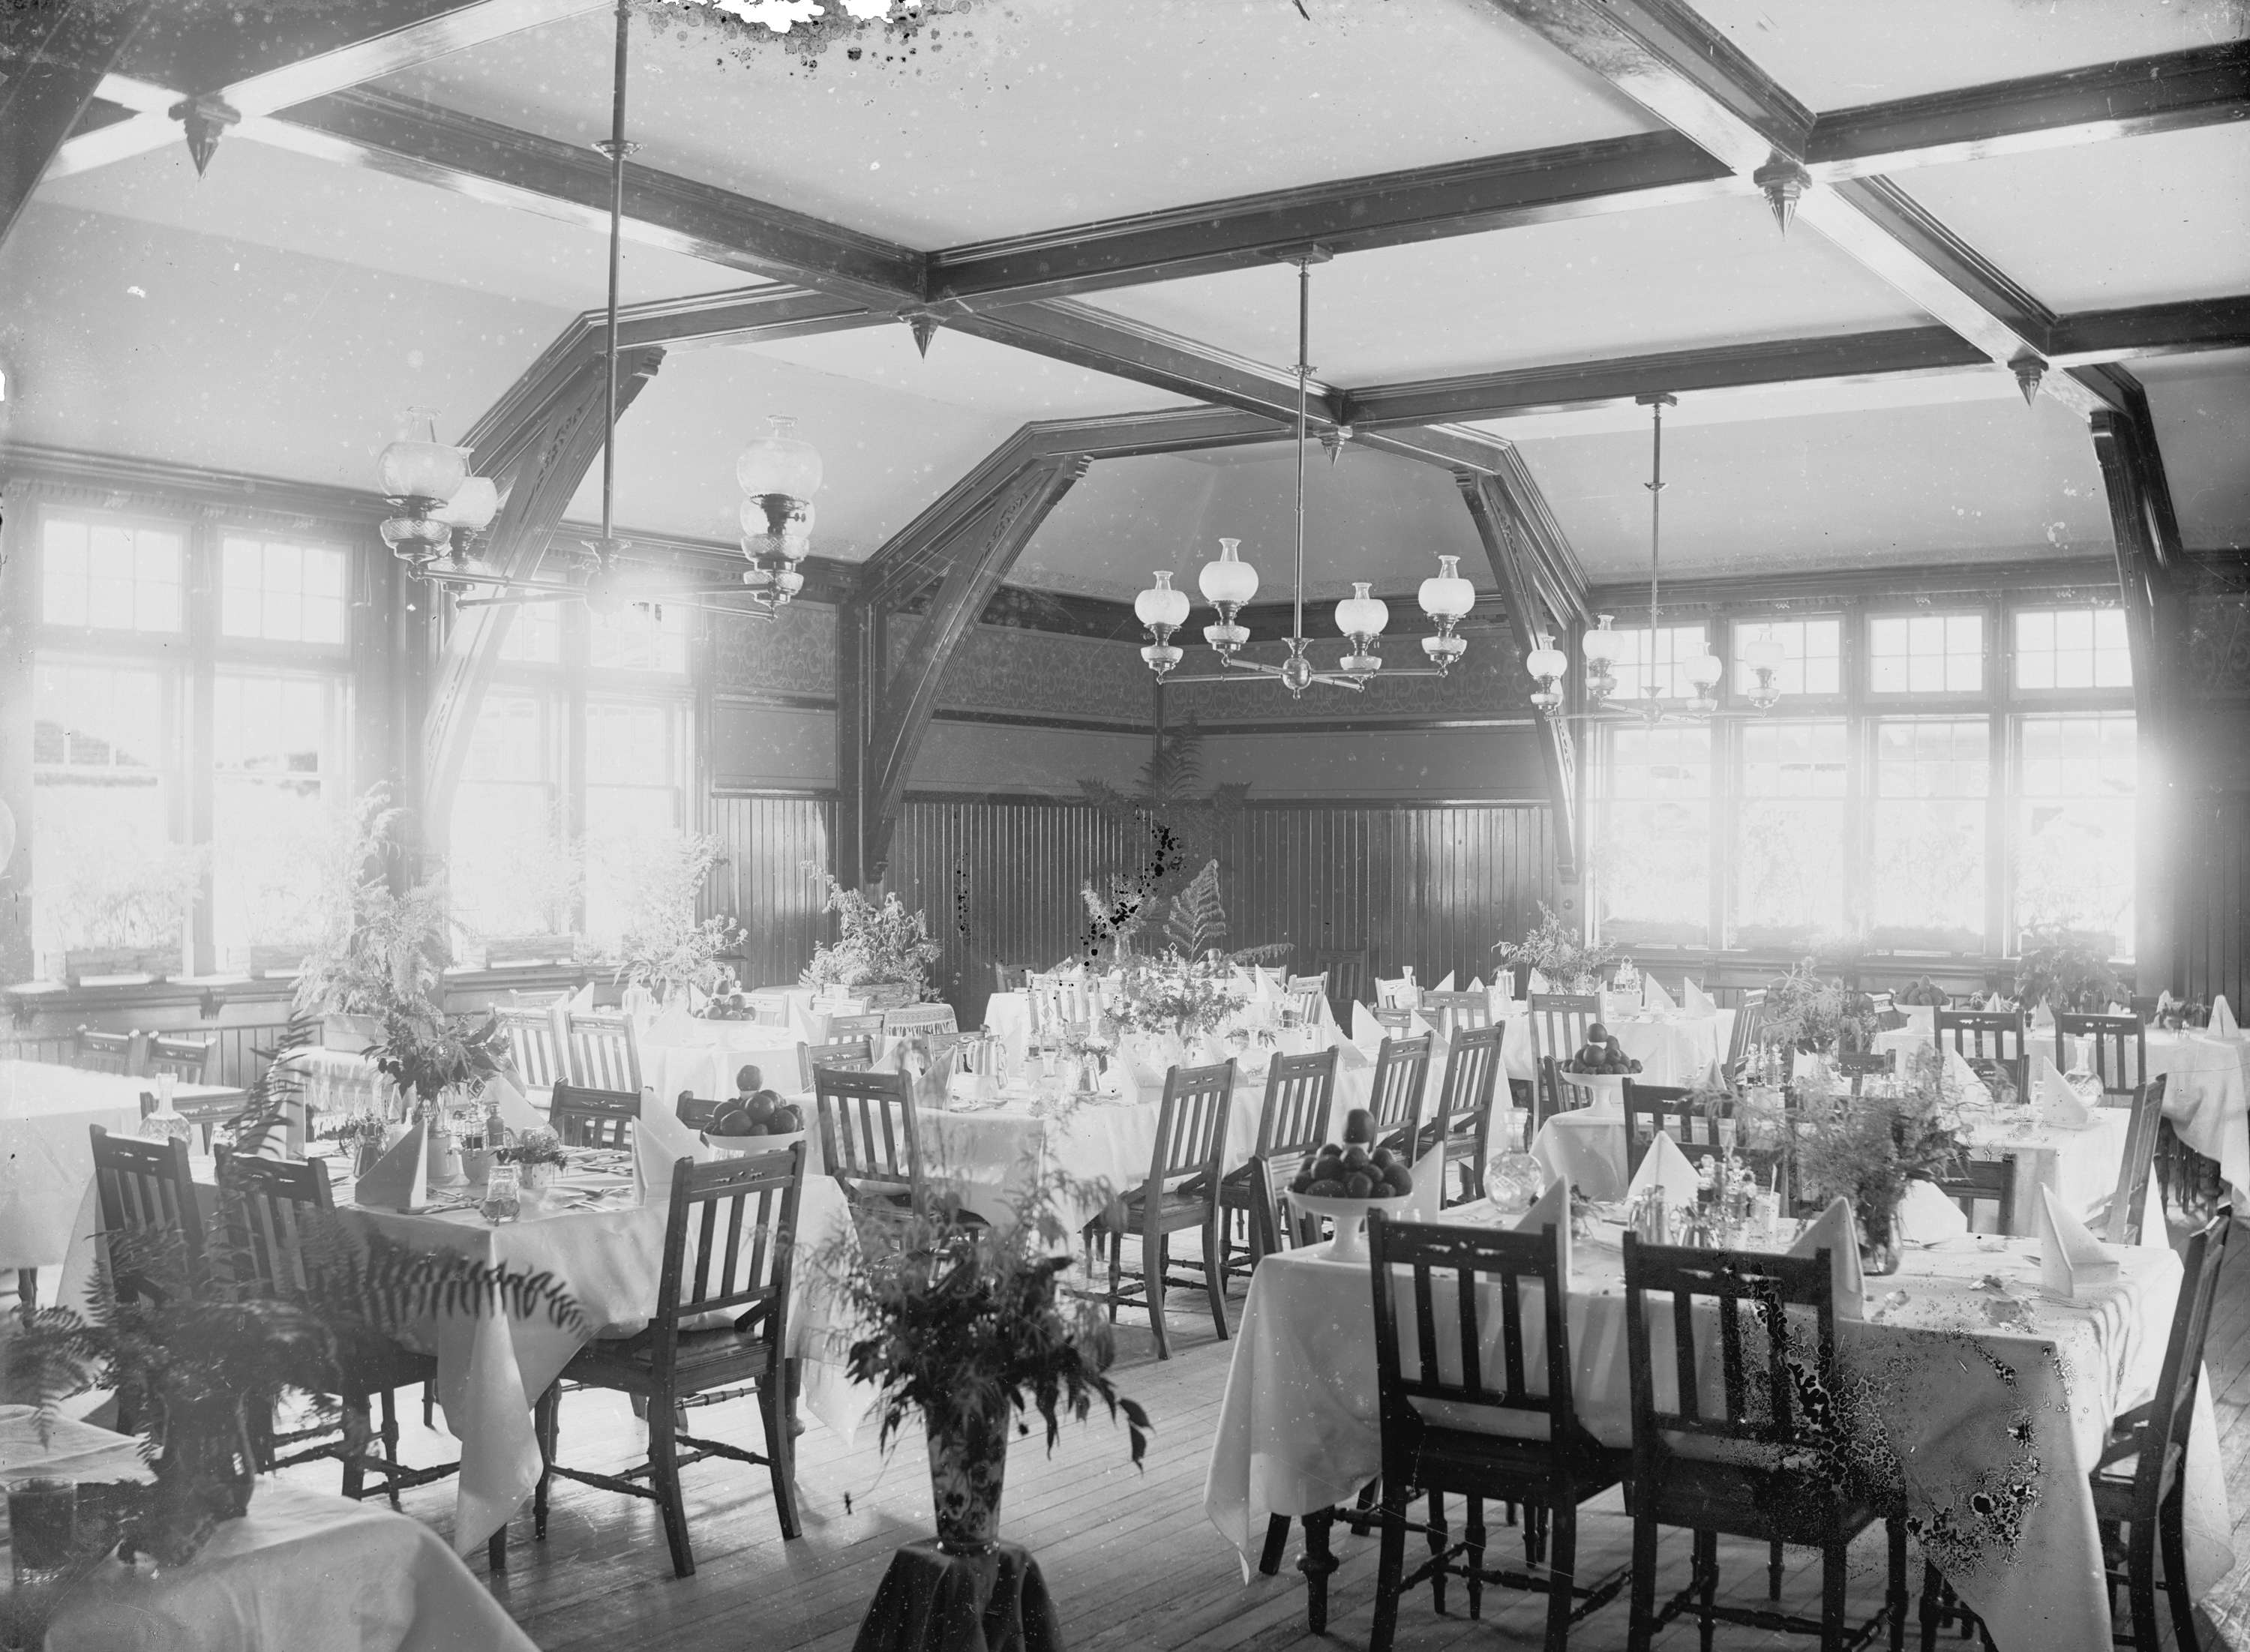 ... C.P.R. Dining Room, Fraser Canyon House, North Bend. Open Original  Digital Object